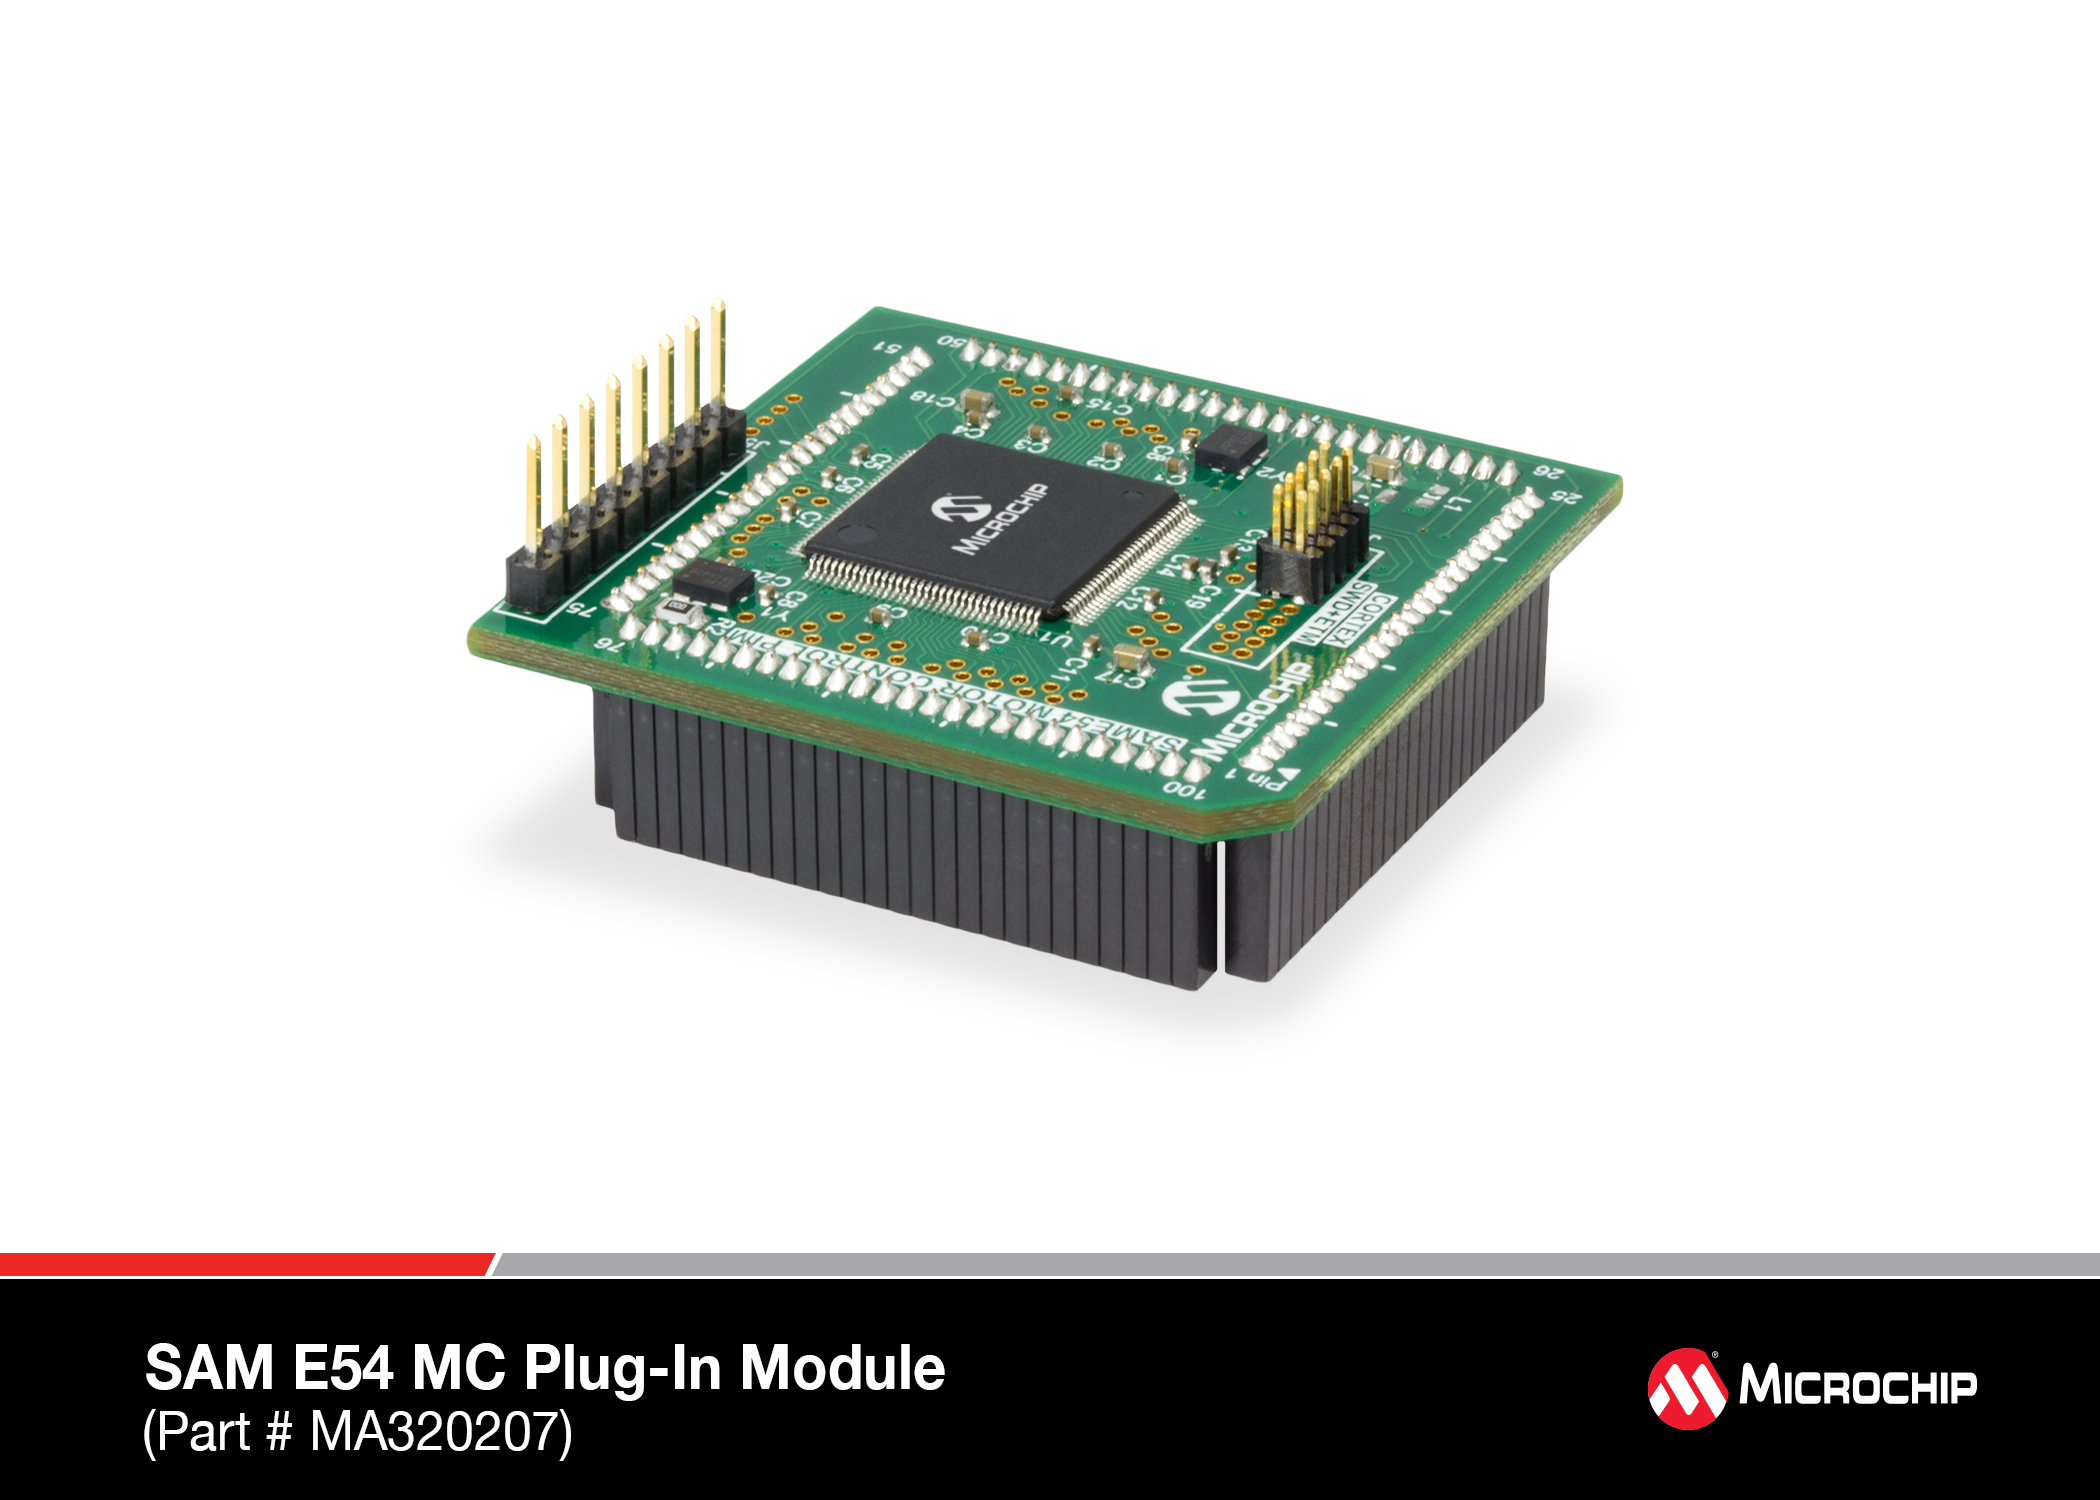 Development Tools Copyright Of This Circuit Belongs To Smart Kit Electronics In Plug Module Comes With A Atsame54 32 Bit Arm Cortex M4mcu Device It Can Be Used The Microchip Mchv 3 Dm330023 And Mclv 2 Dm330021